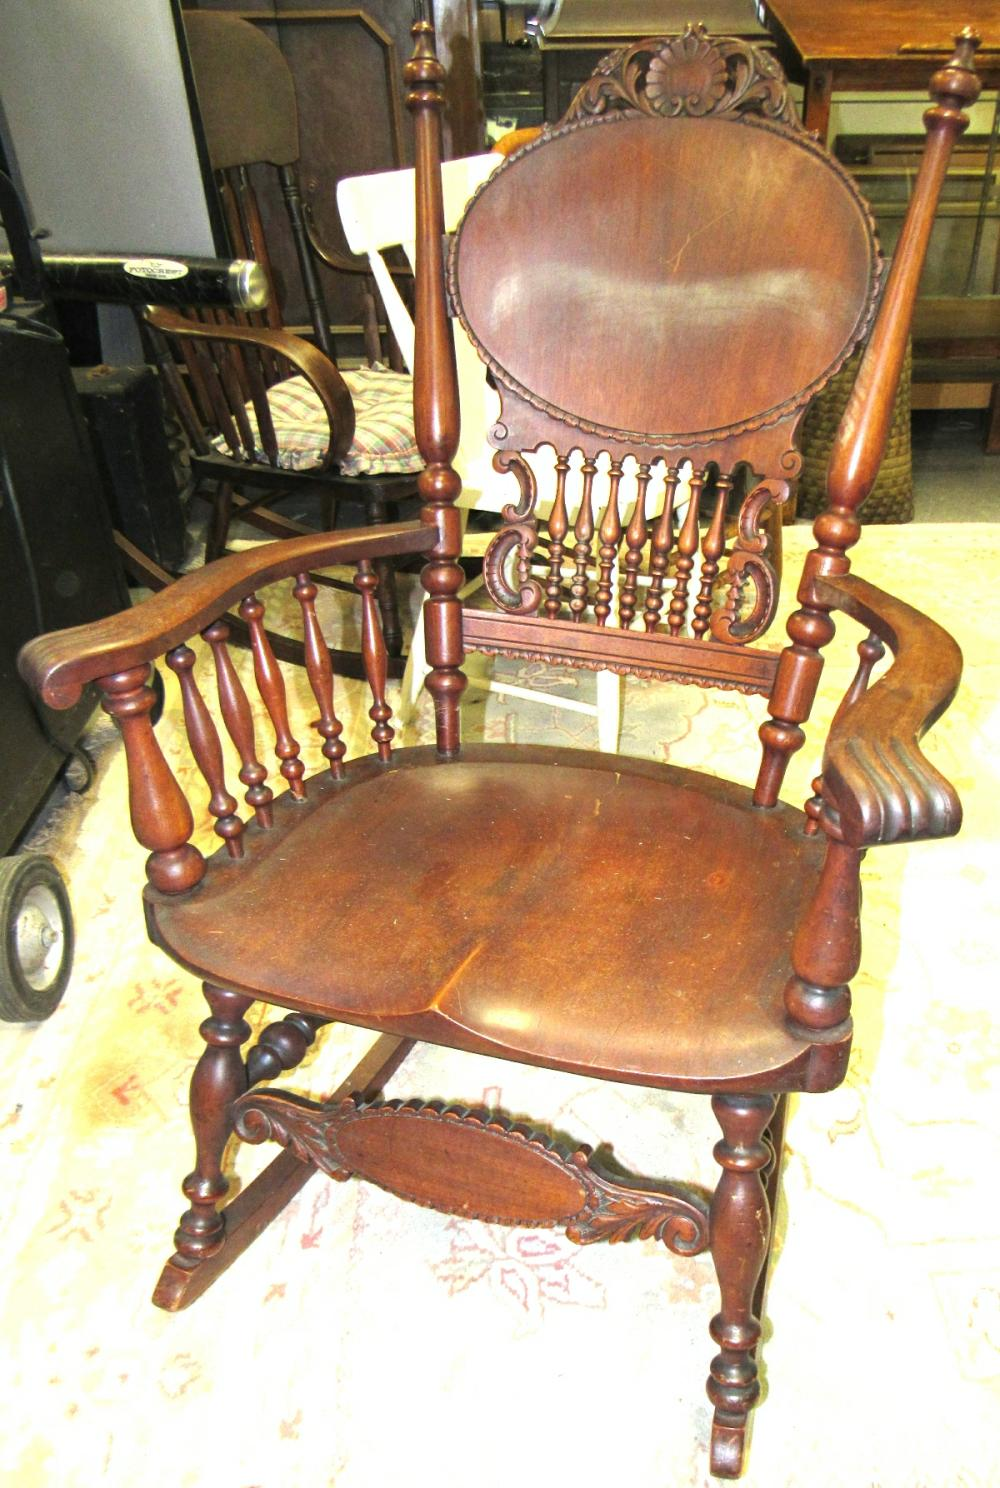 1800's Fancy Victorian Antique Carved Rocking Chair, All Responsibility for Shipping will be the Successful Bidder. You must arrange for pickup directly or by a shipper within 7 days after sale.